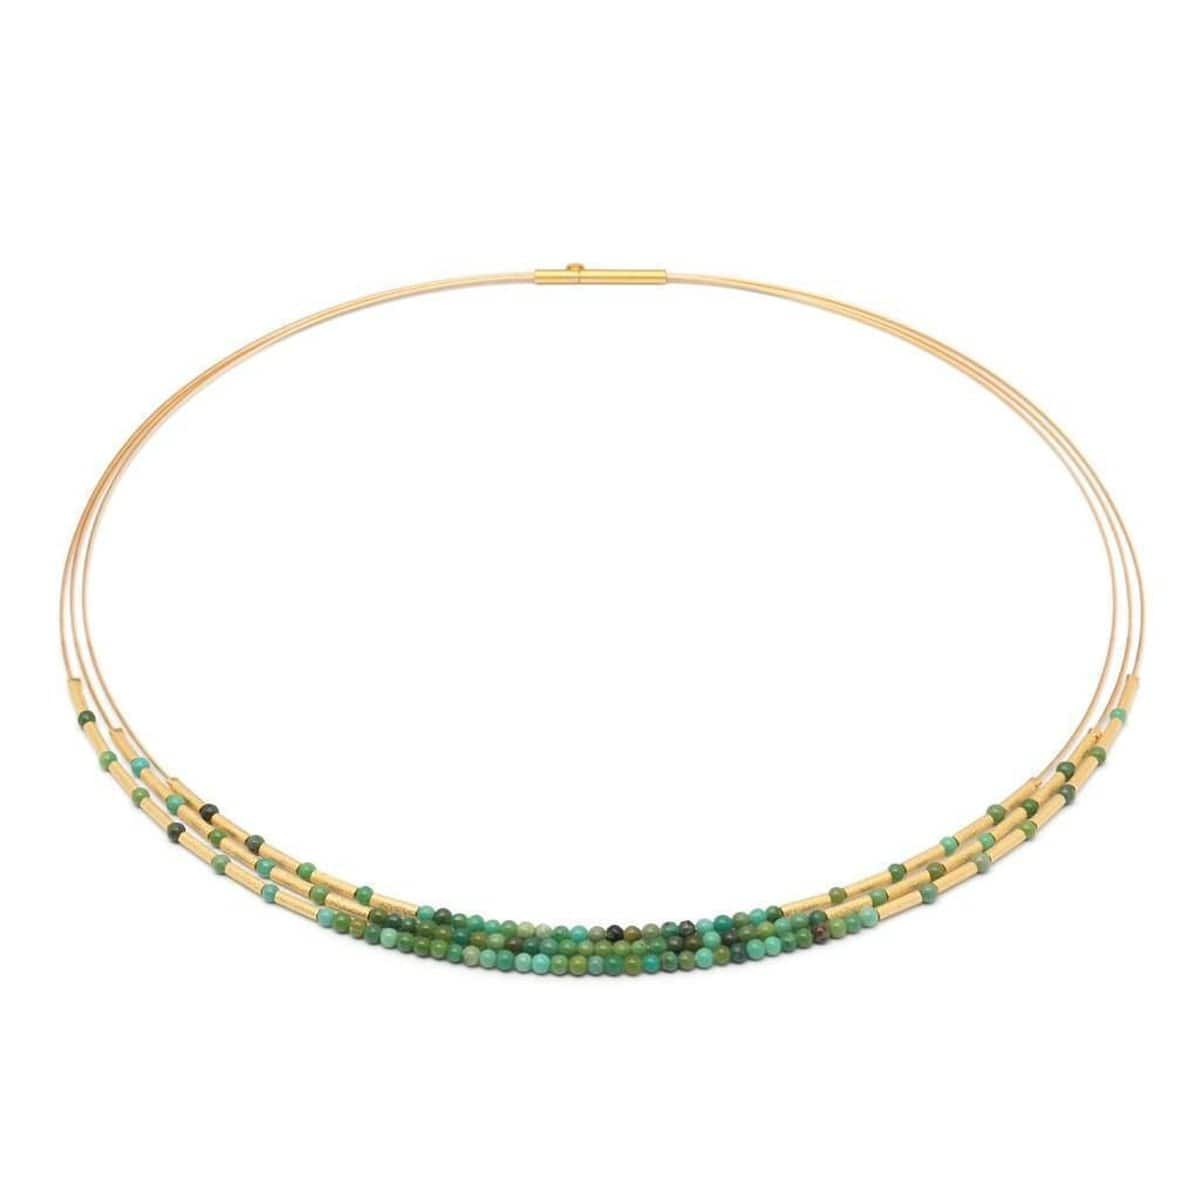 Clema Green Turquoise Necklace - 85219356-Bernd Wolf-Renee Taylor Gallery